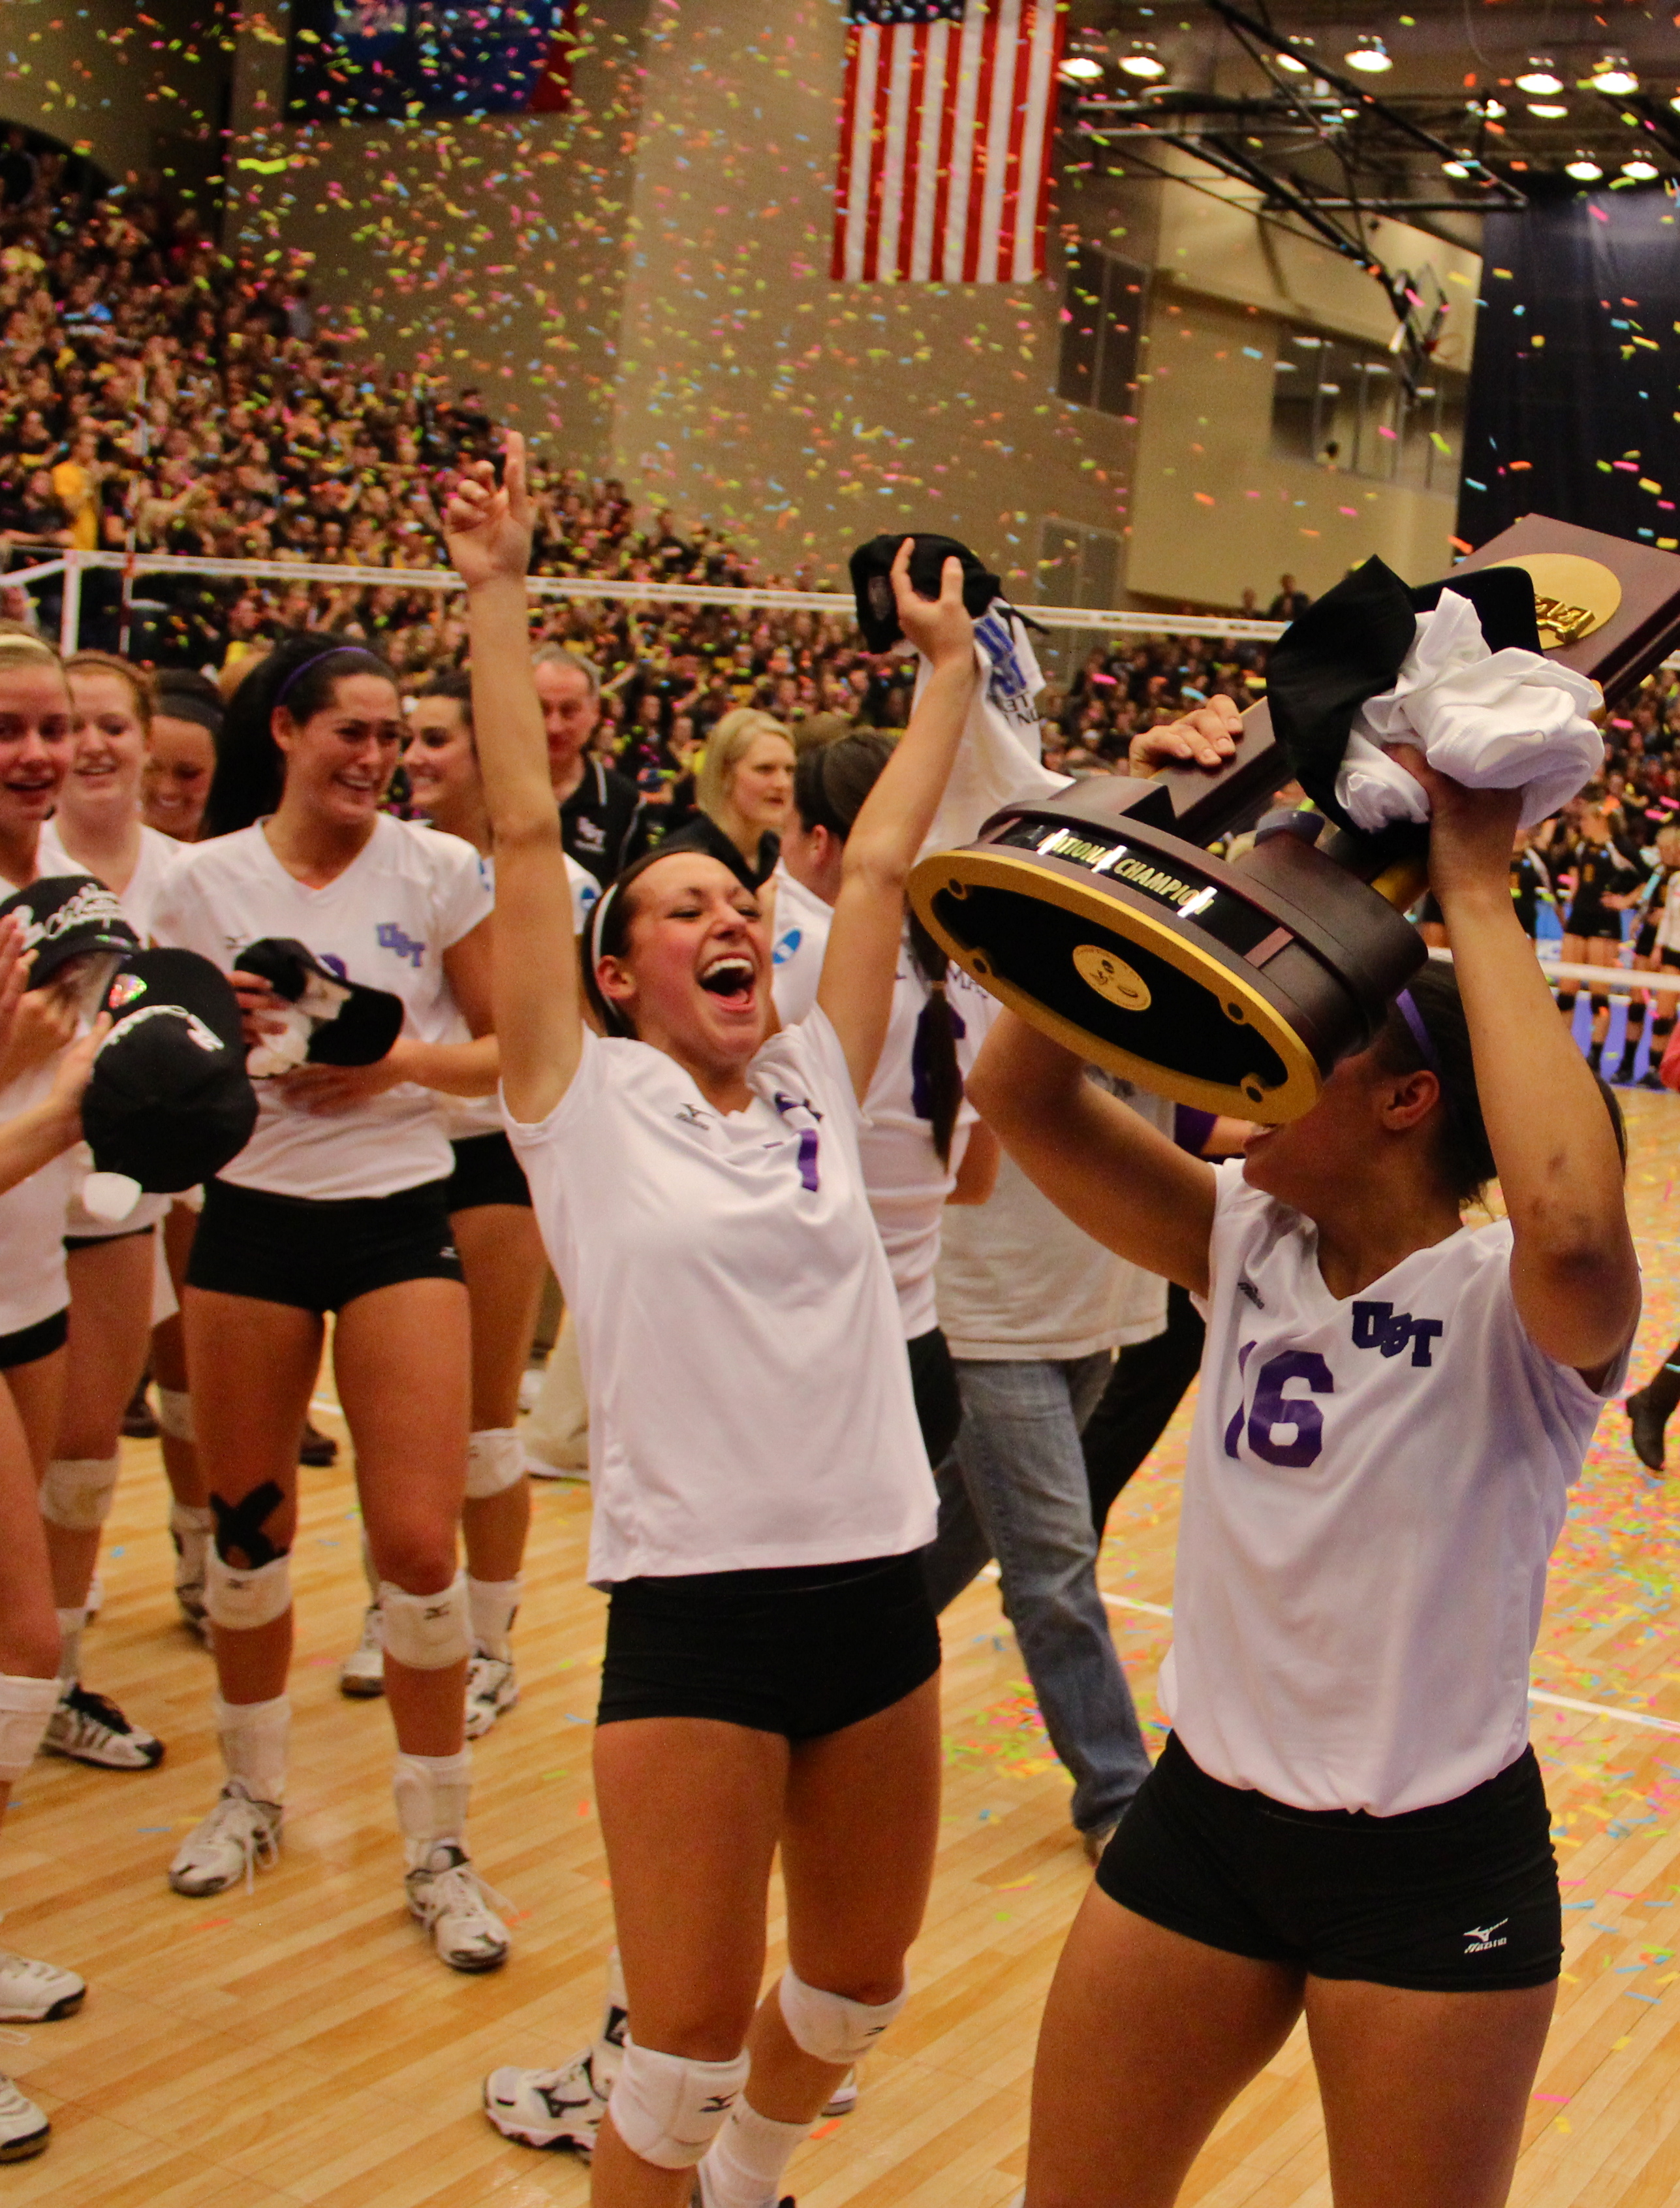 Setter Katie Maher celebrates as the St. Thomas volleyball team is presented the national championship trophy after a tight, 3-2 victory over the Calvin Knights in November 2012. The Tommies were given the No. 1 preseason ranking by the American Volleyball Coaches Association poll Wednesday. (Rosie Murphy/TommieMedia)